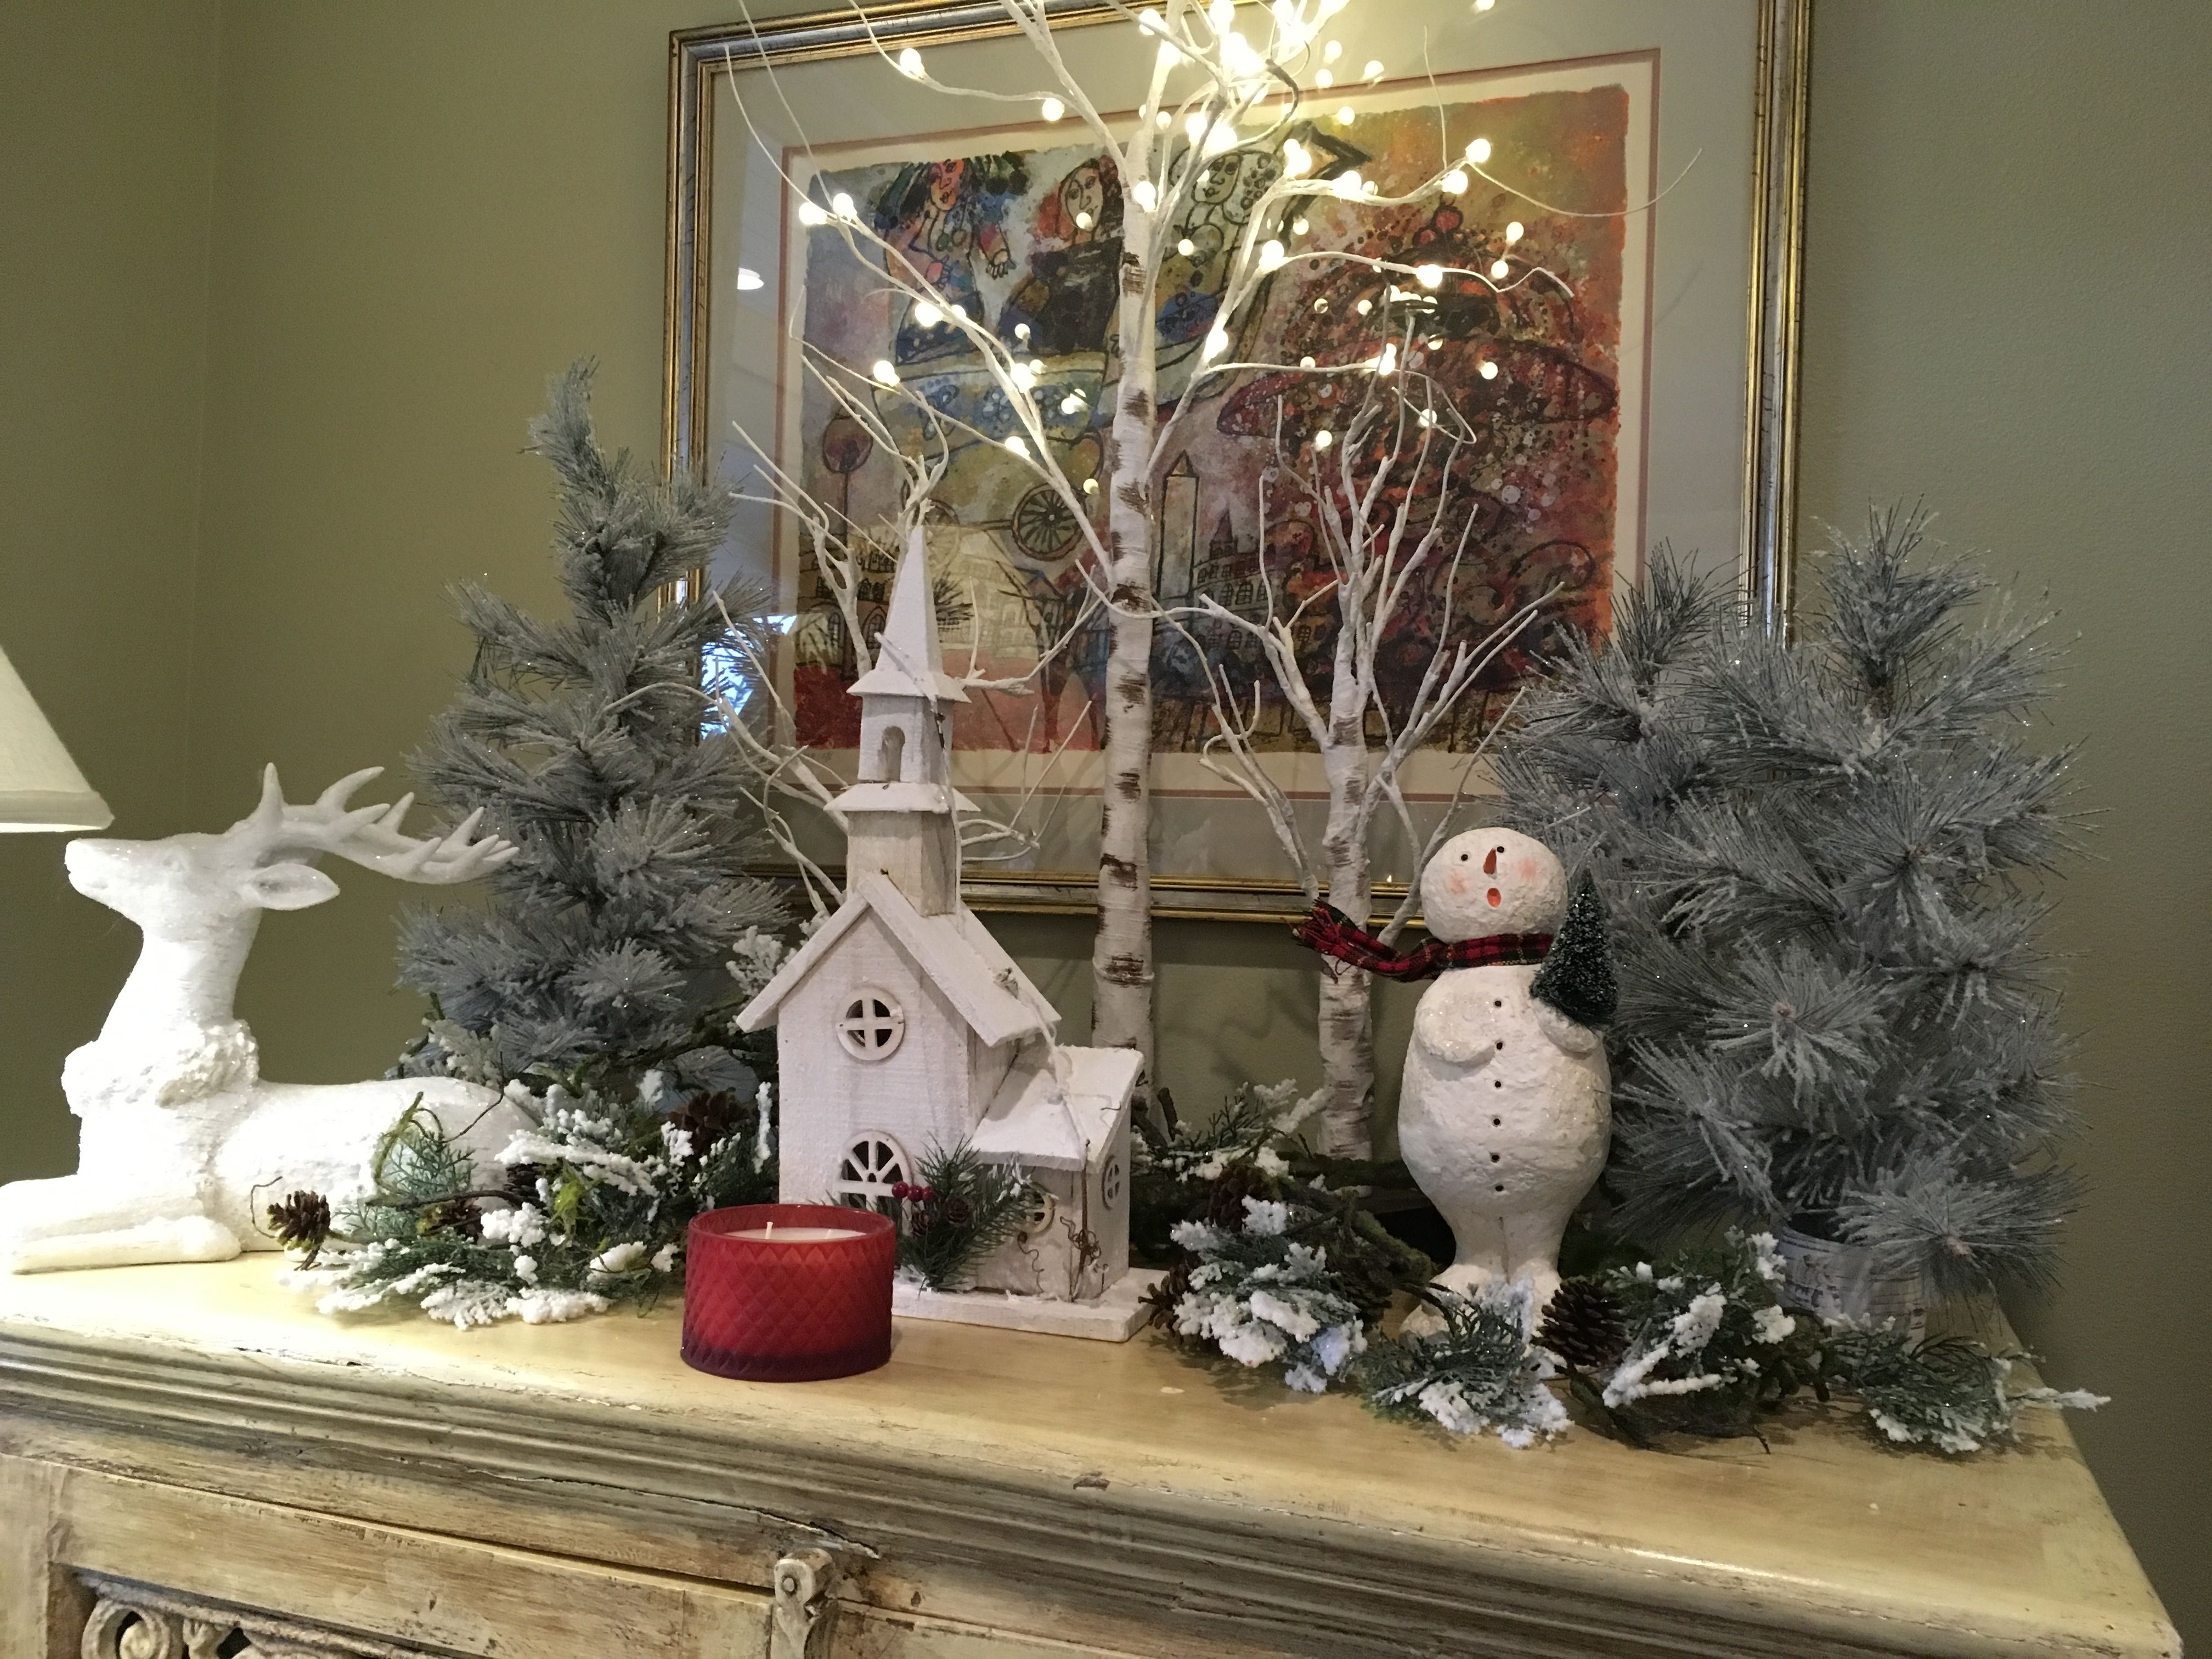 Pin by Rosemary Weimer on Christmas